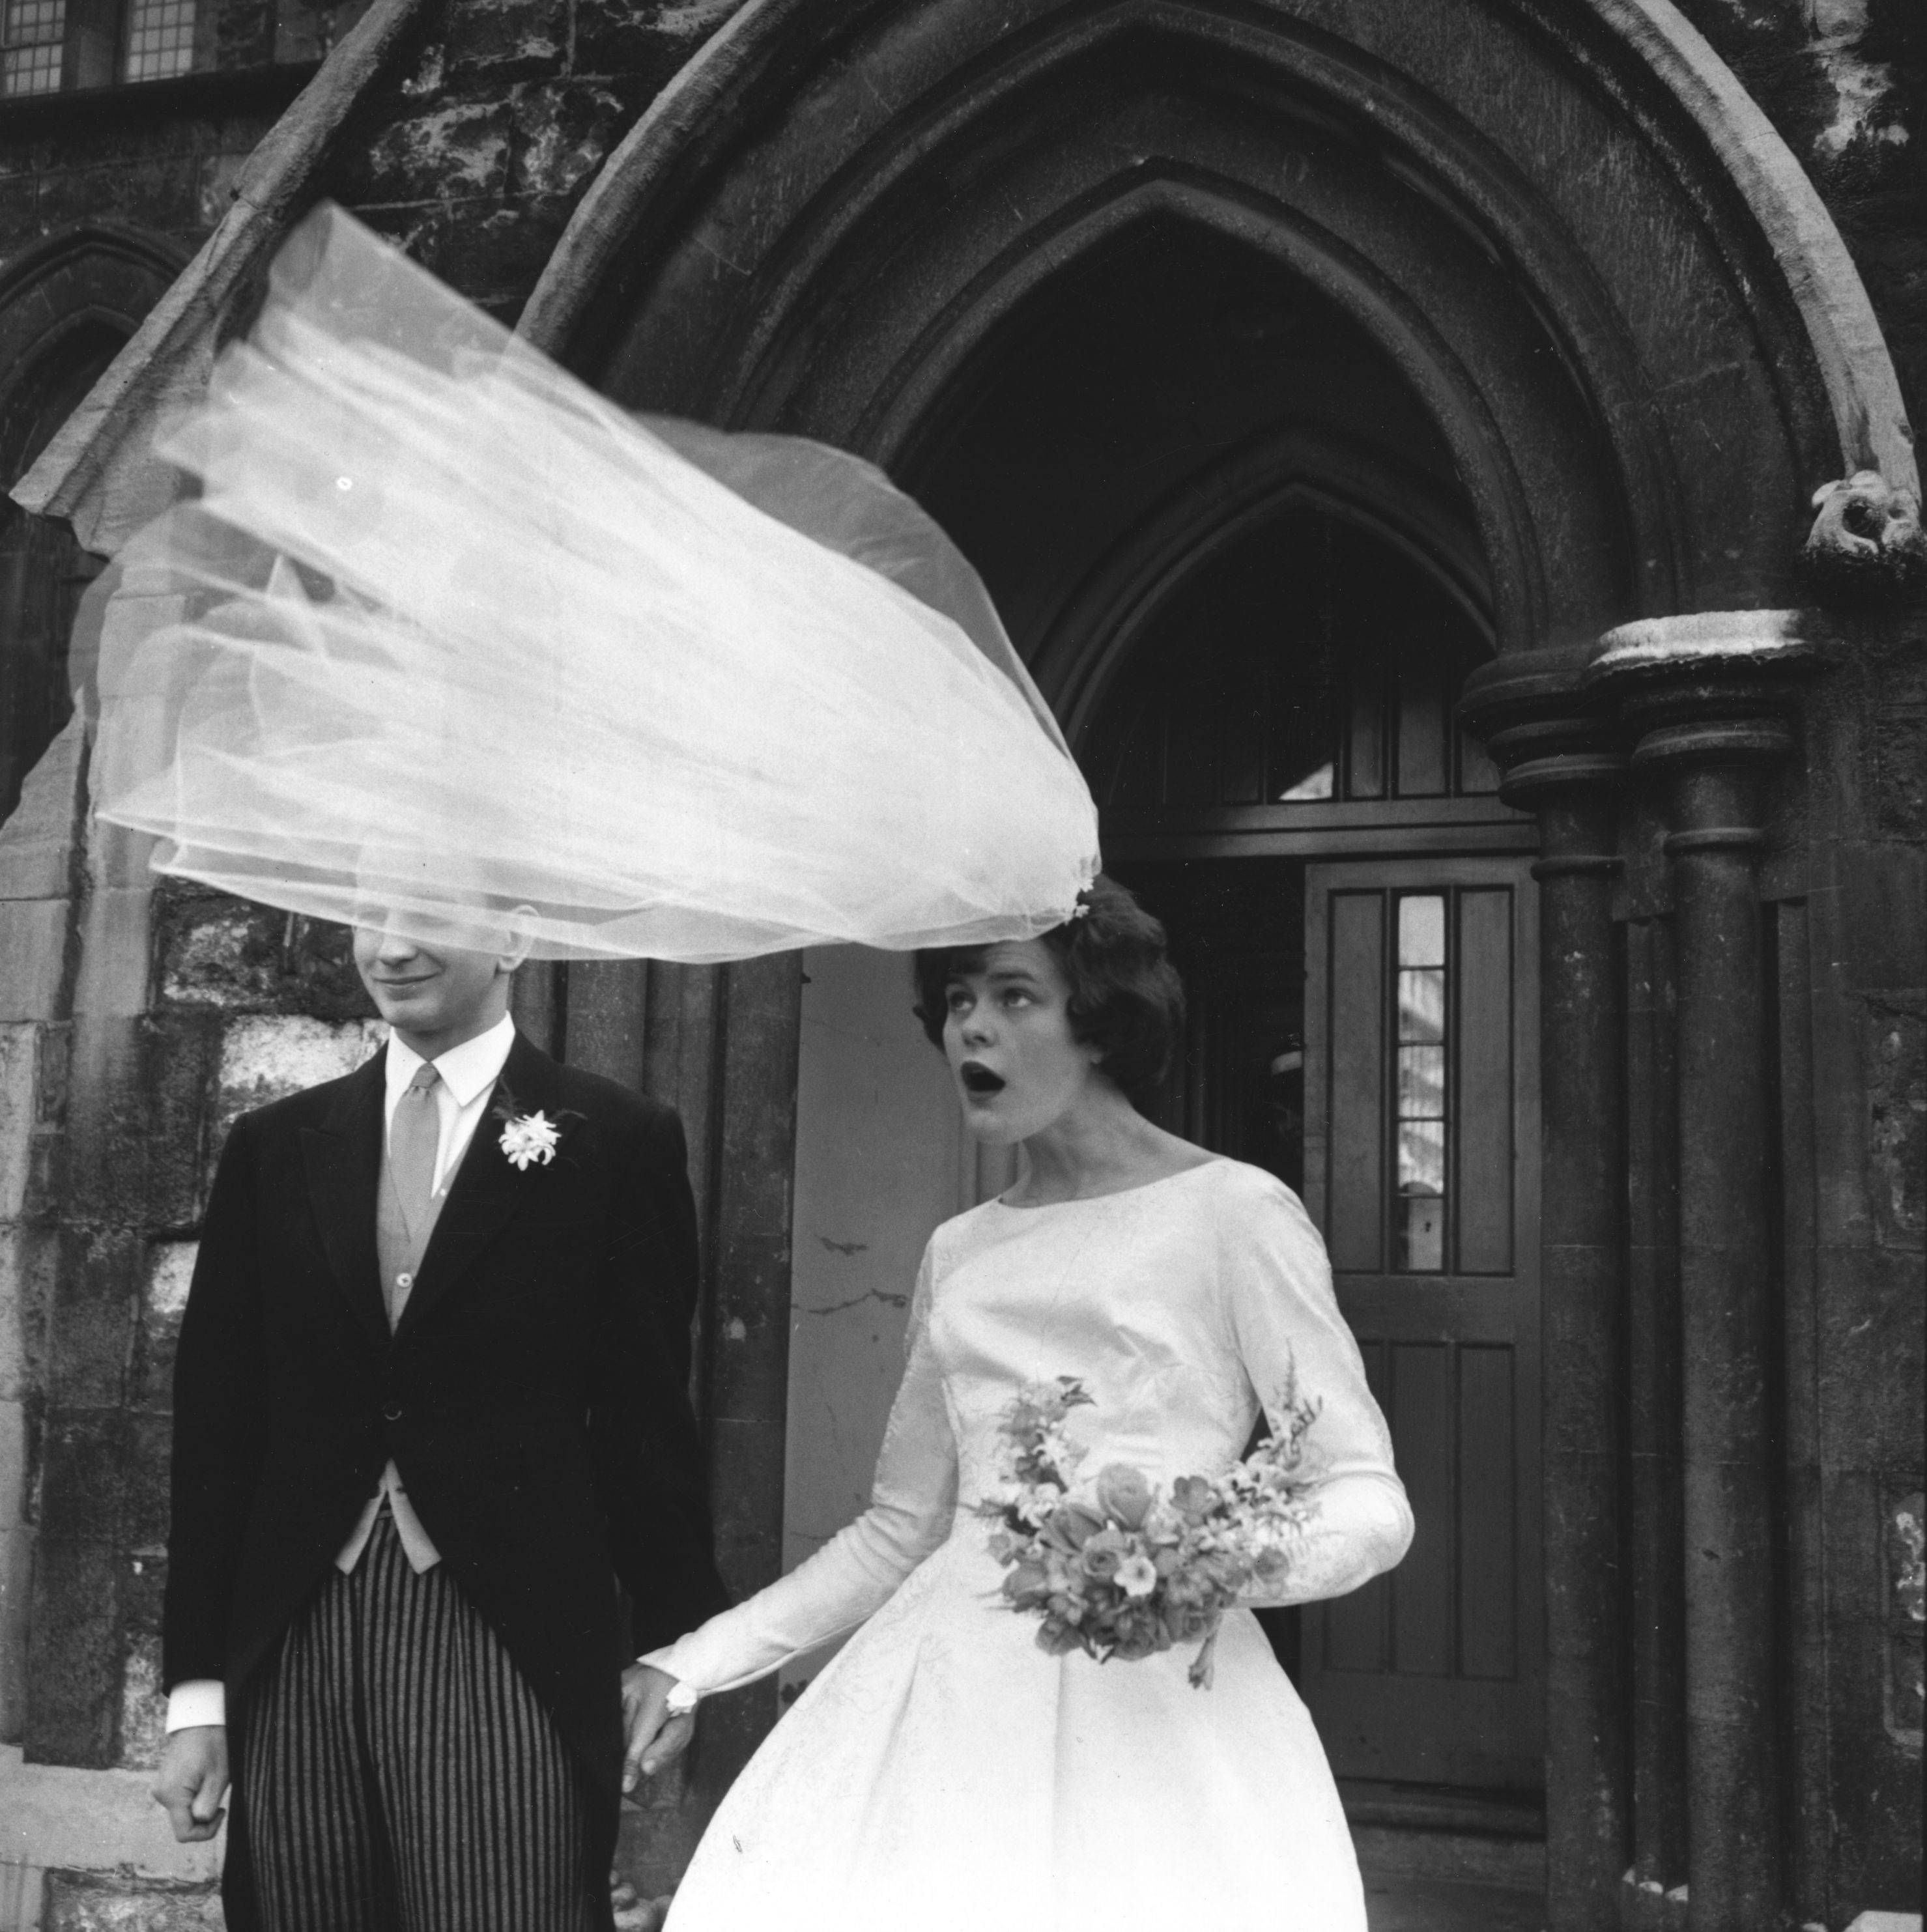 Windy Wedding 1965 Newly Wed Bride Eileen Petticrew S Veil Flies Up In A Gust Of Wind As She Poses With Husband Robert Greenhill Outside St John The